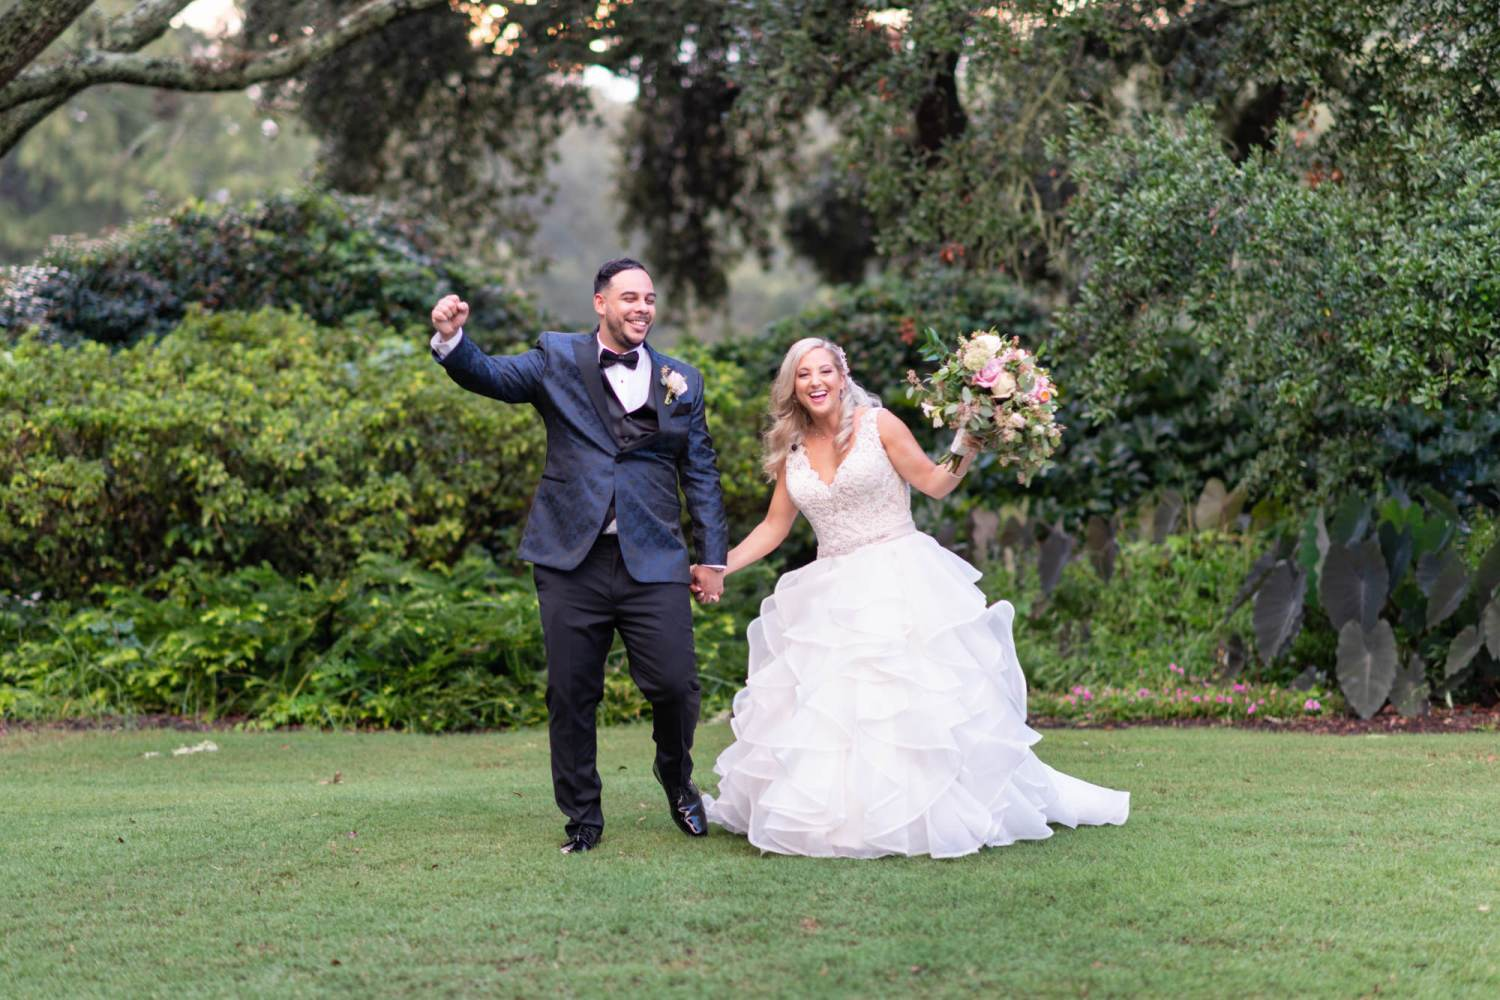 Happy bride and groom cheering on the lawn - Litchfield Country Club